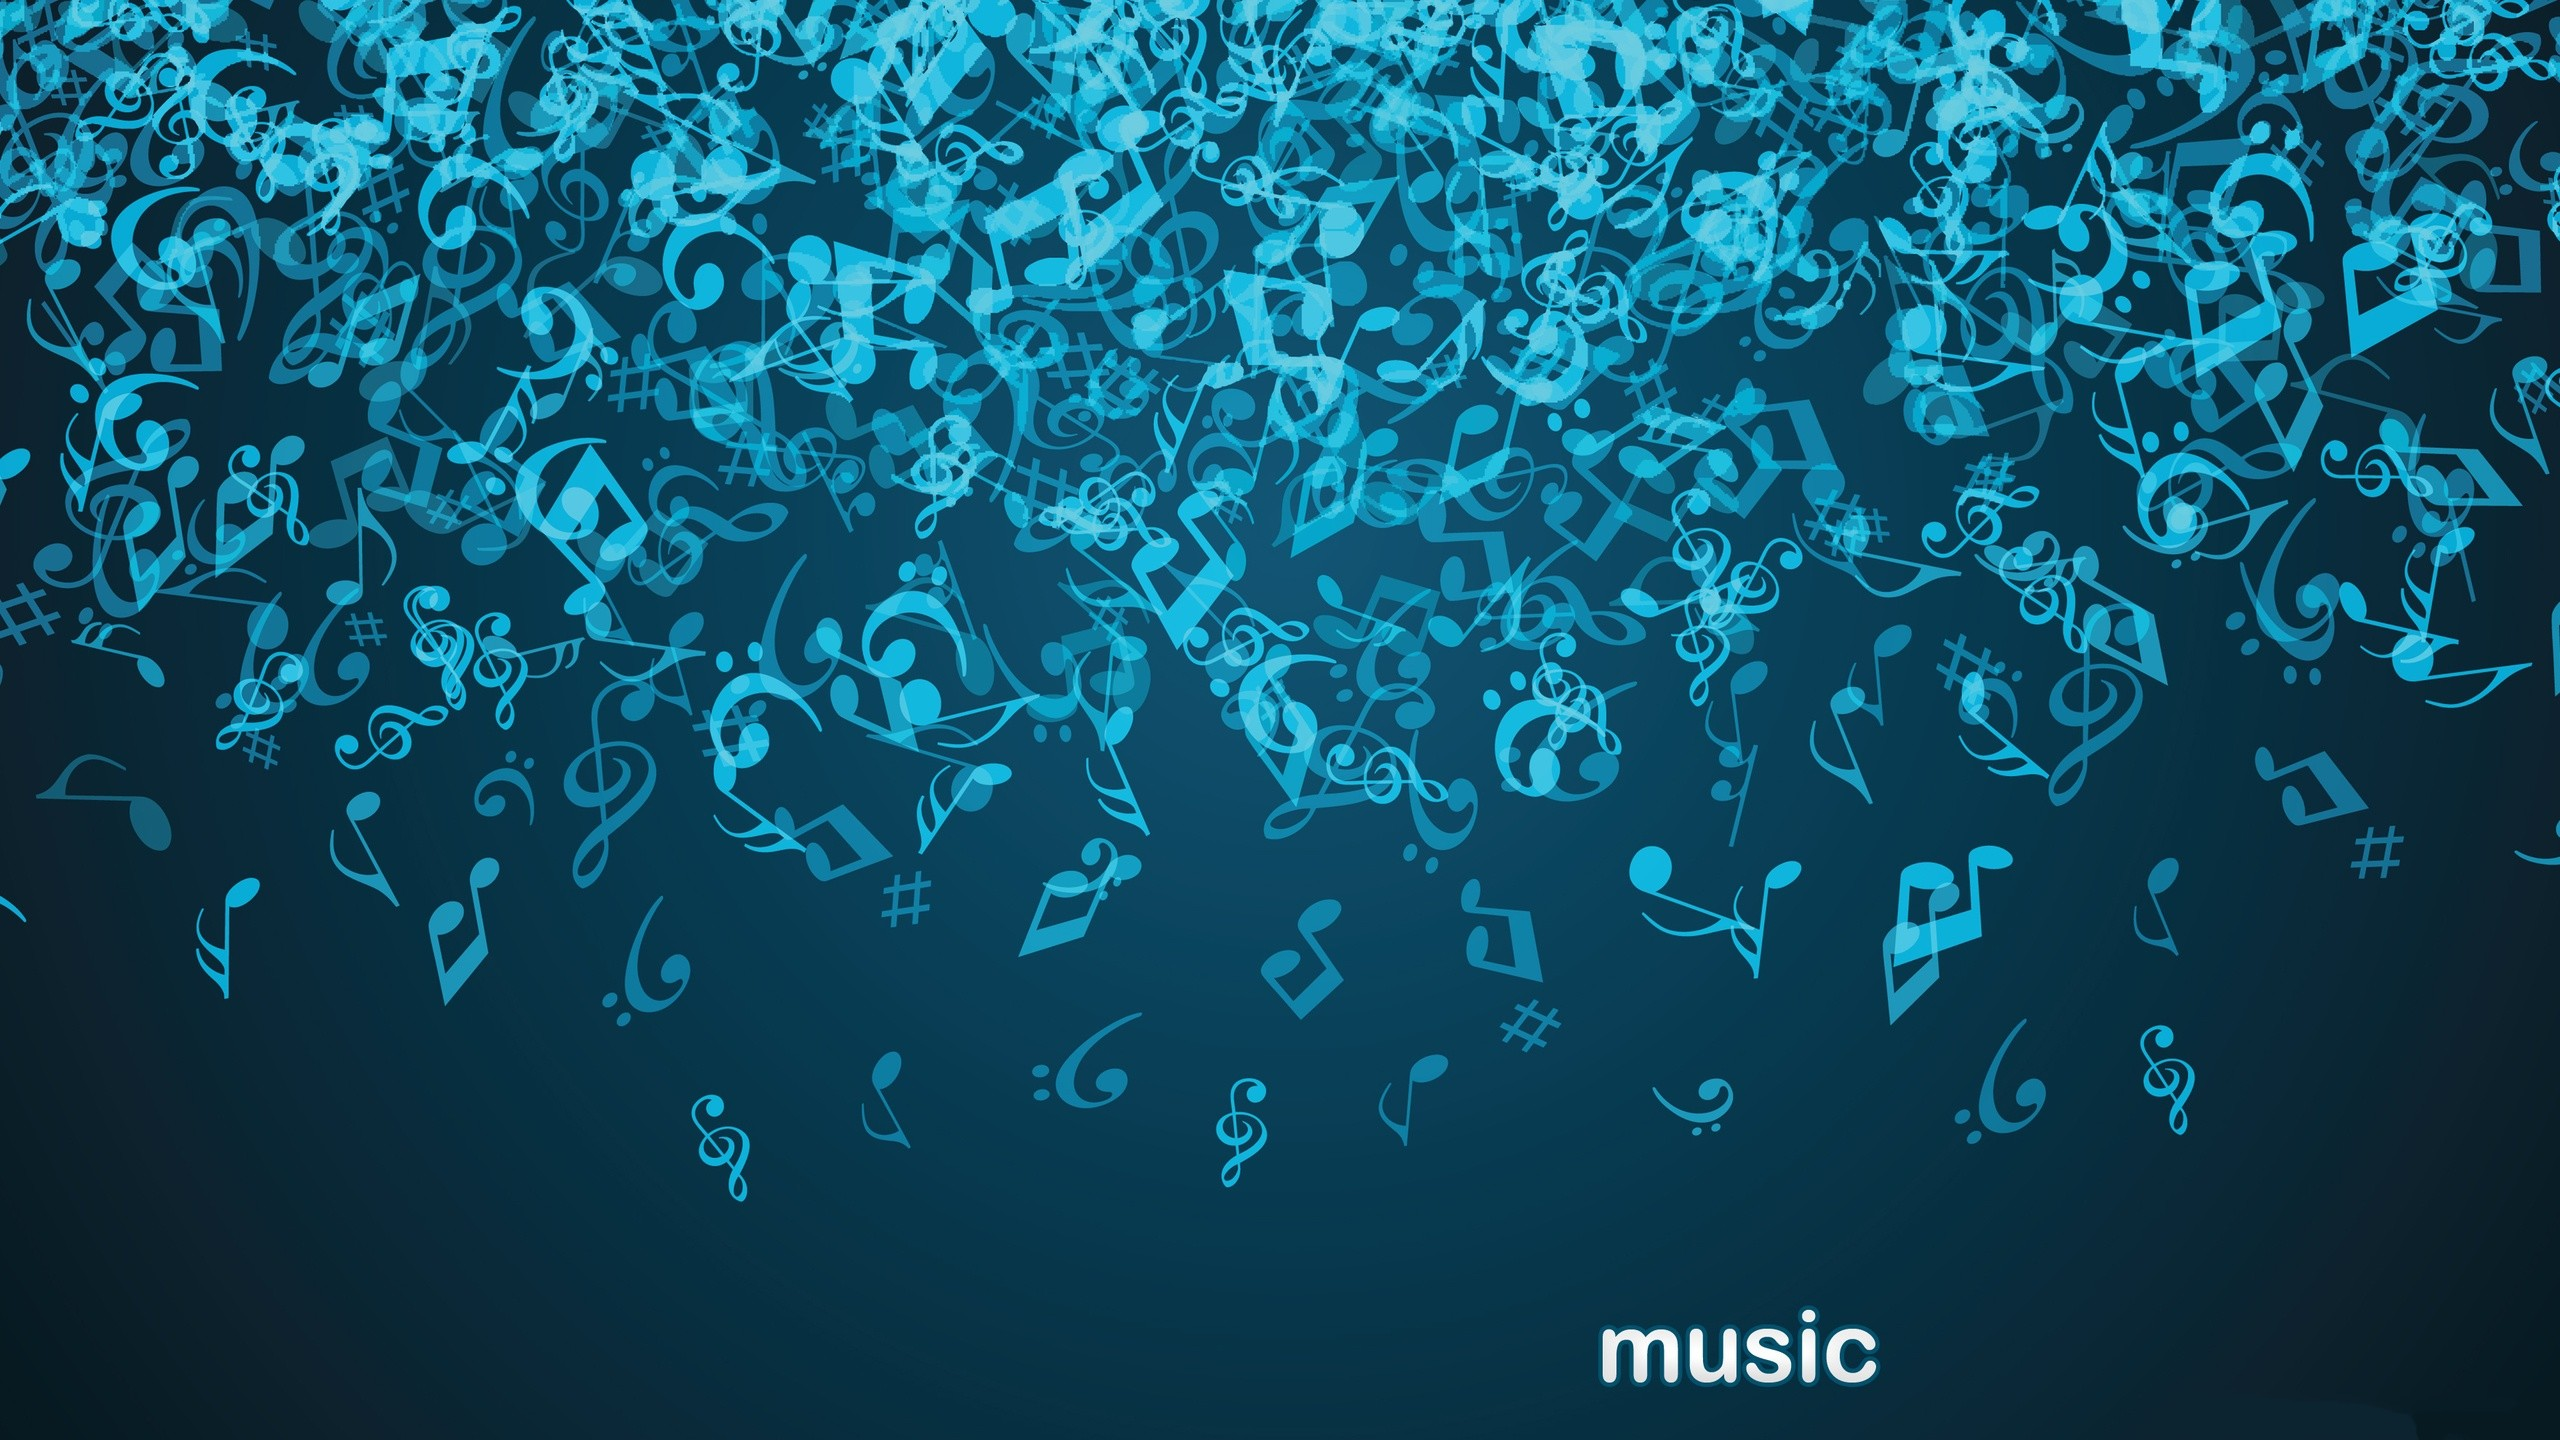 Music Wallpaper For Ipad: Blue Music Wallpaper (73+ Images